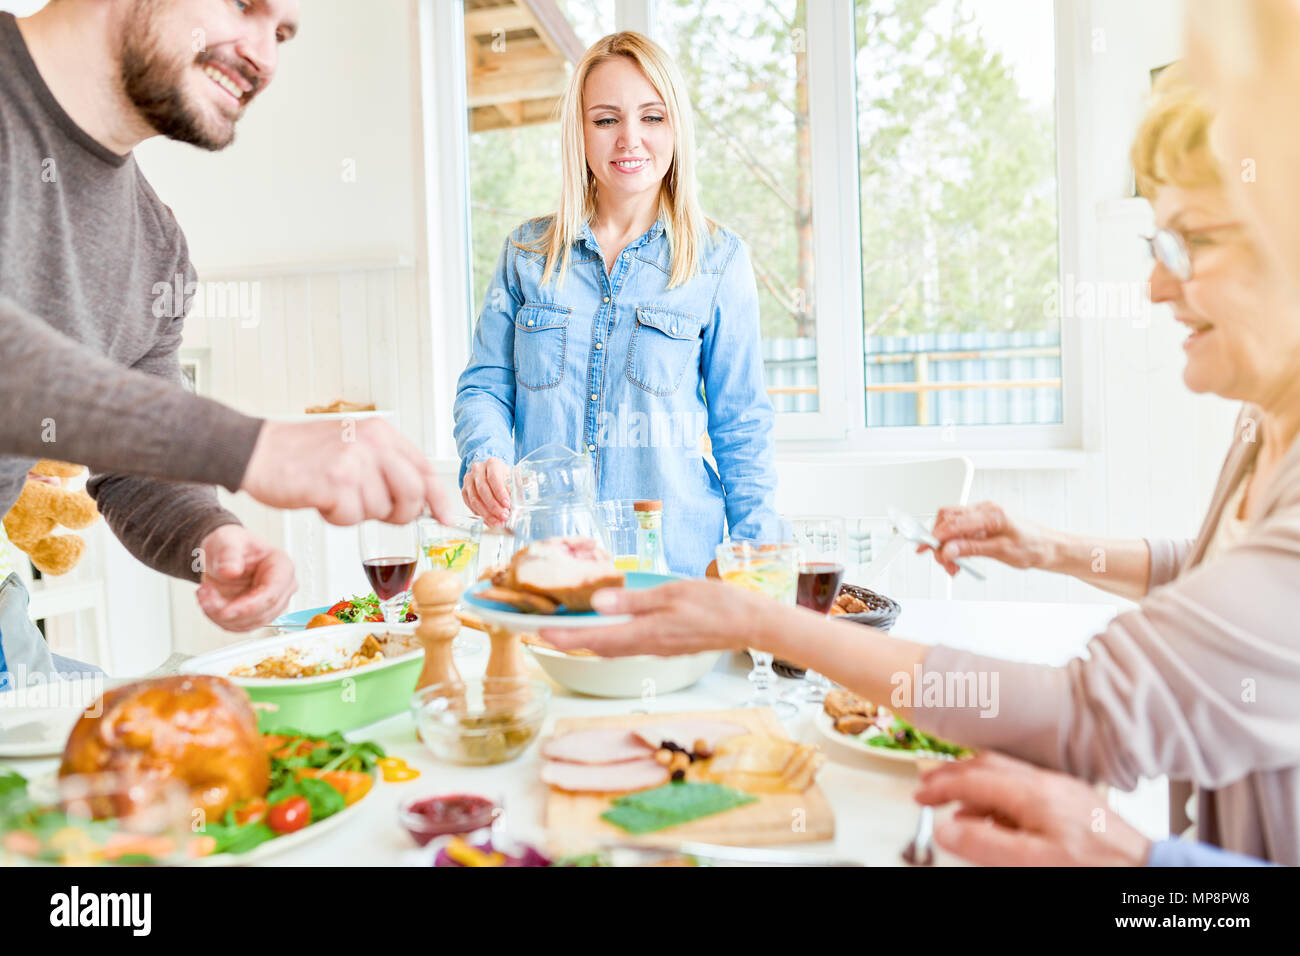 Young Woman Hosting Family Dinner - Stock Image